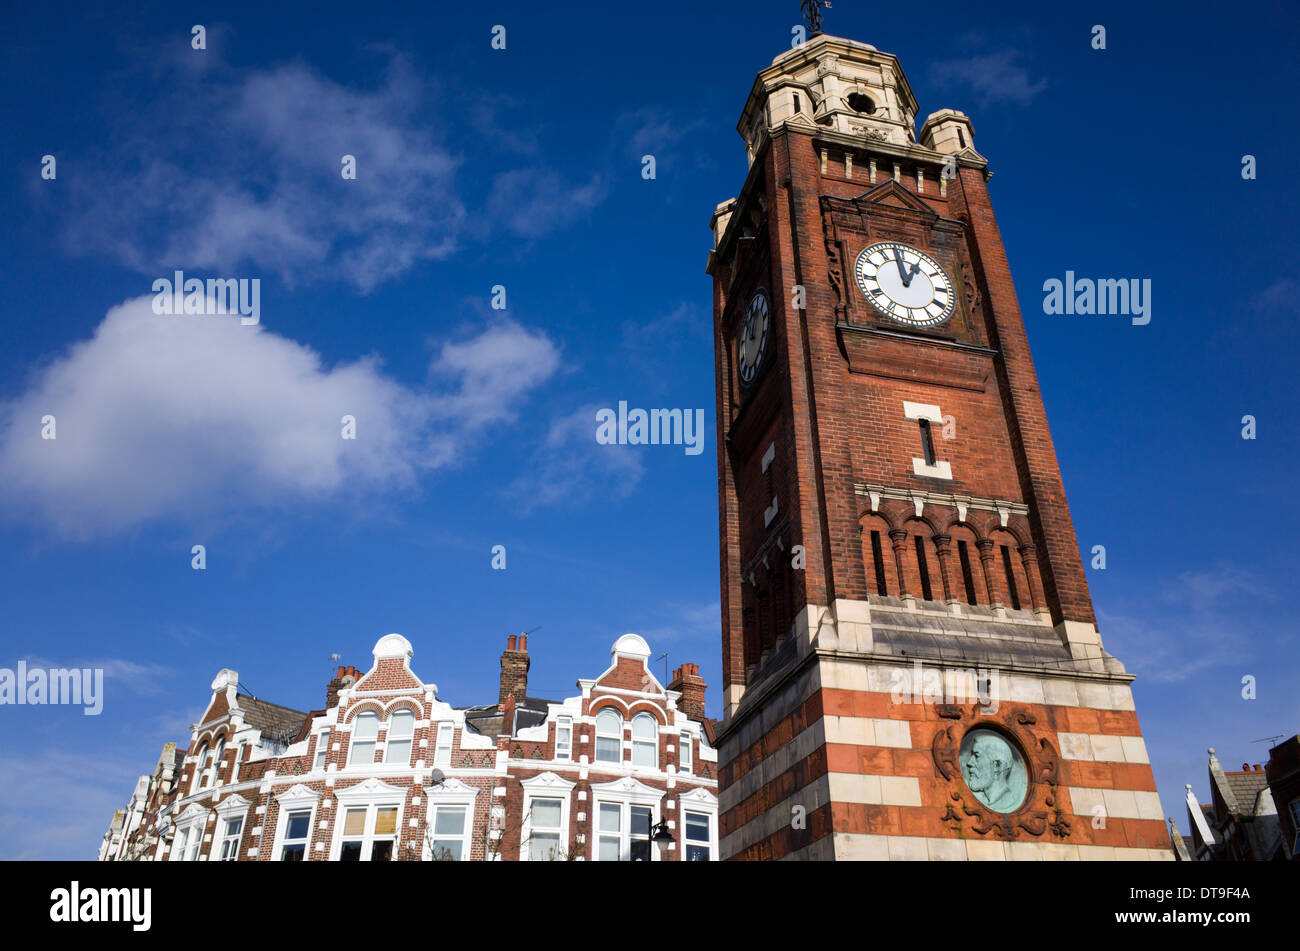 Crouch End Clock Tower, Londres, Inglaterra, Reino Unido. Imagen De Stock